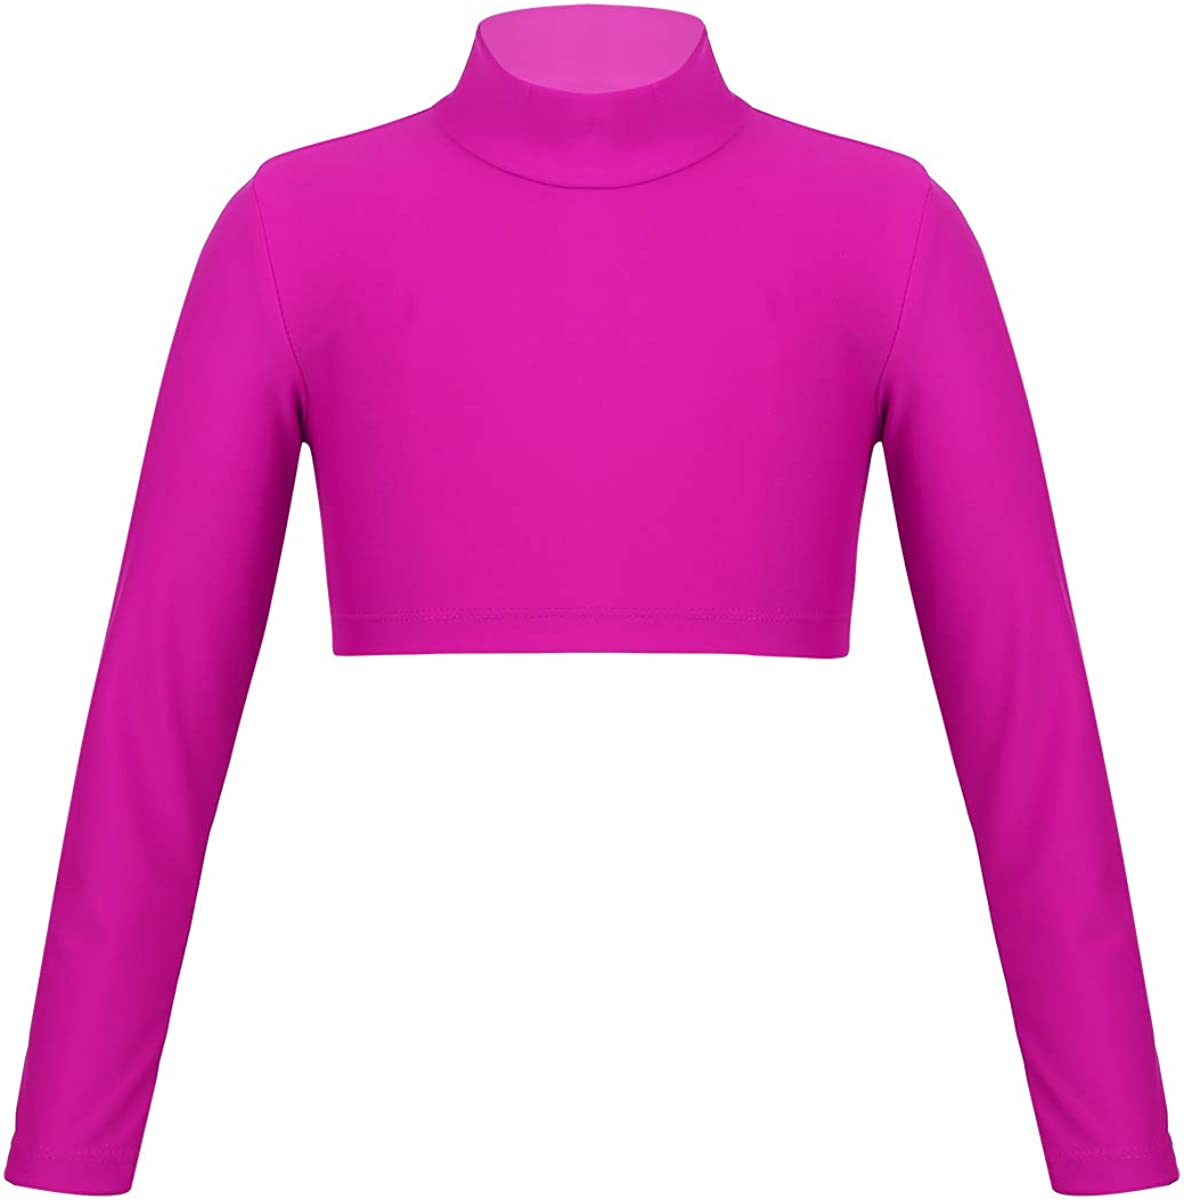 Jowowha Youth Girls Mock Neck Long Sleeve Athletic Crop Tops Solid Color Fitness Exercise T-Shirt Sportwear Rose_Red 14